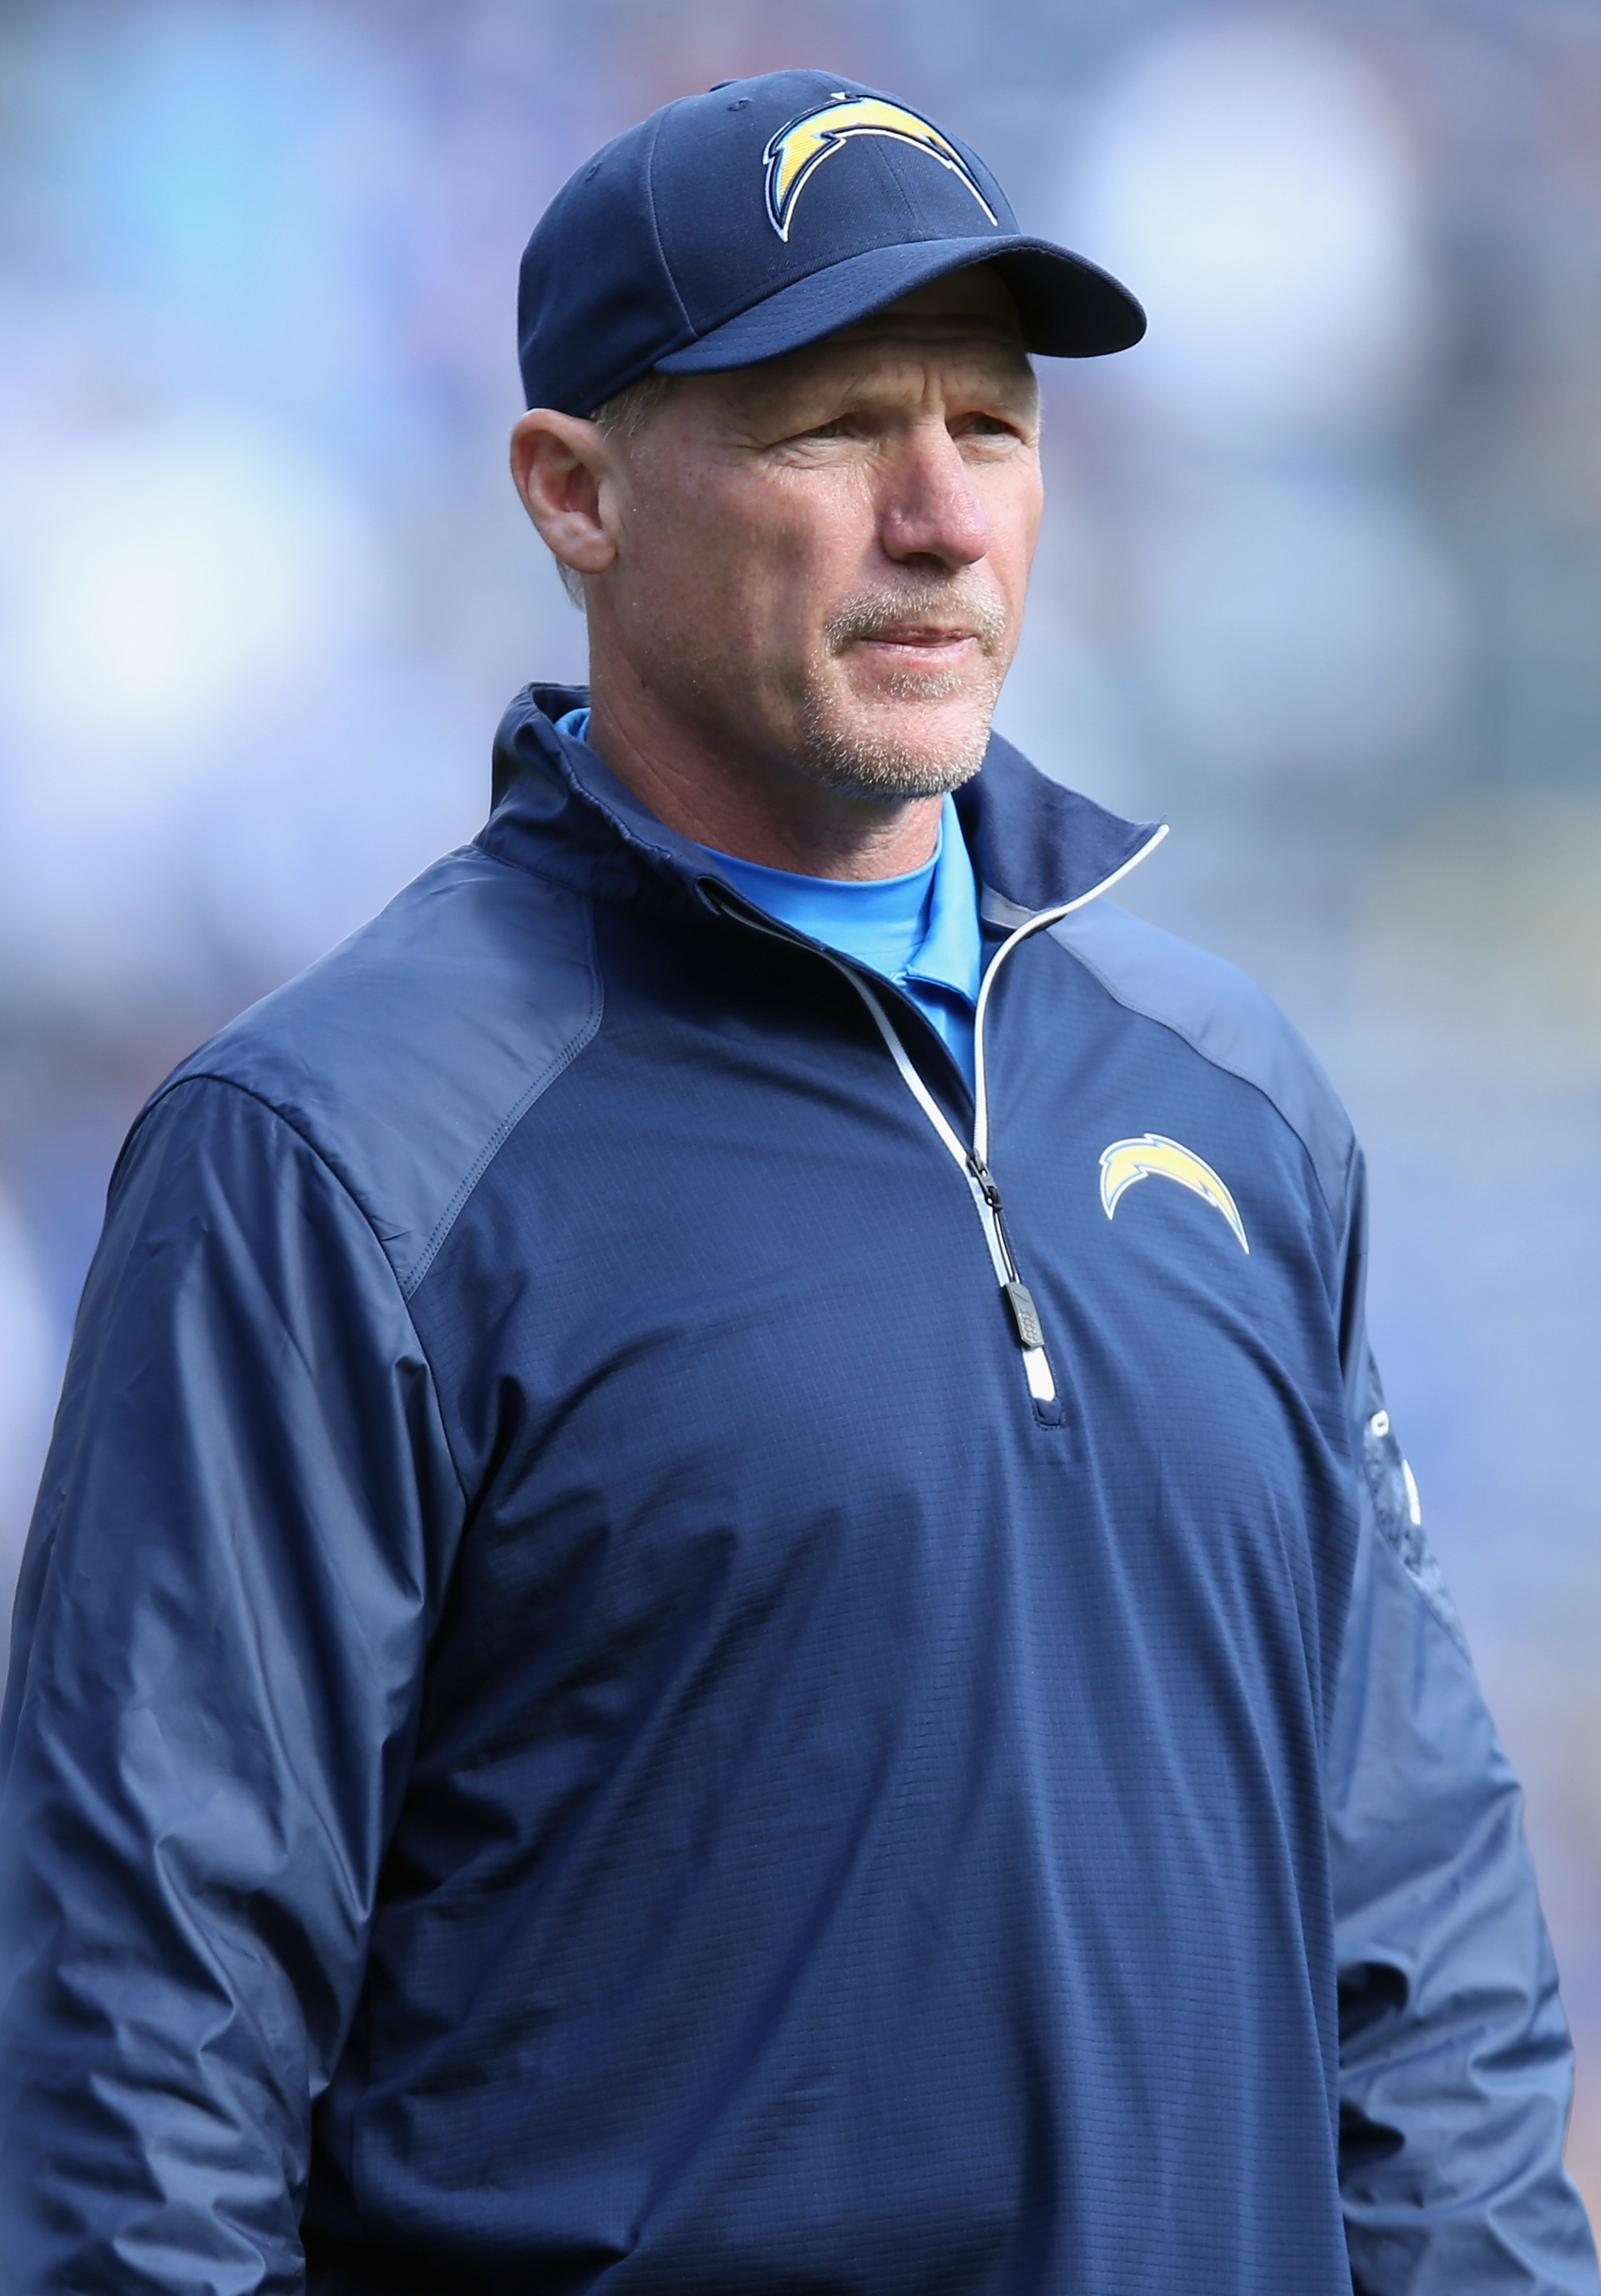 Ken Whisenhunt considered top candidate for Lions head coach, per report